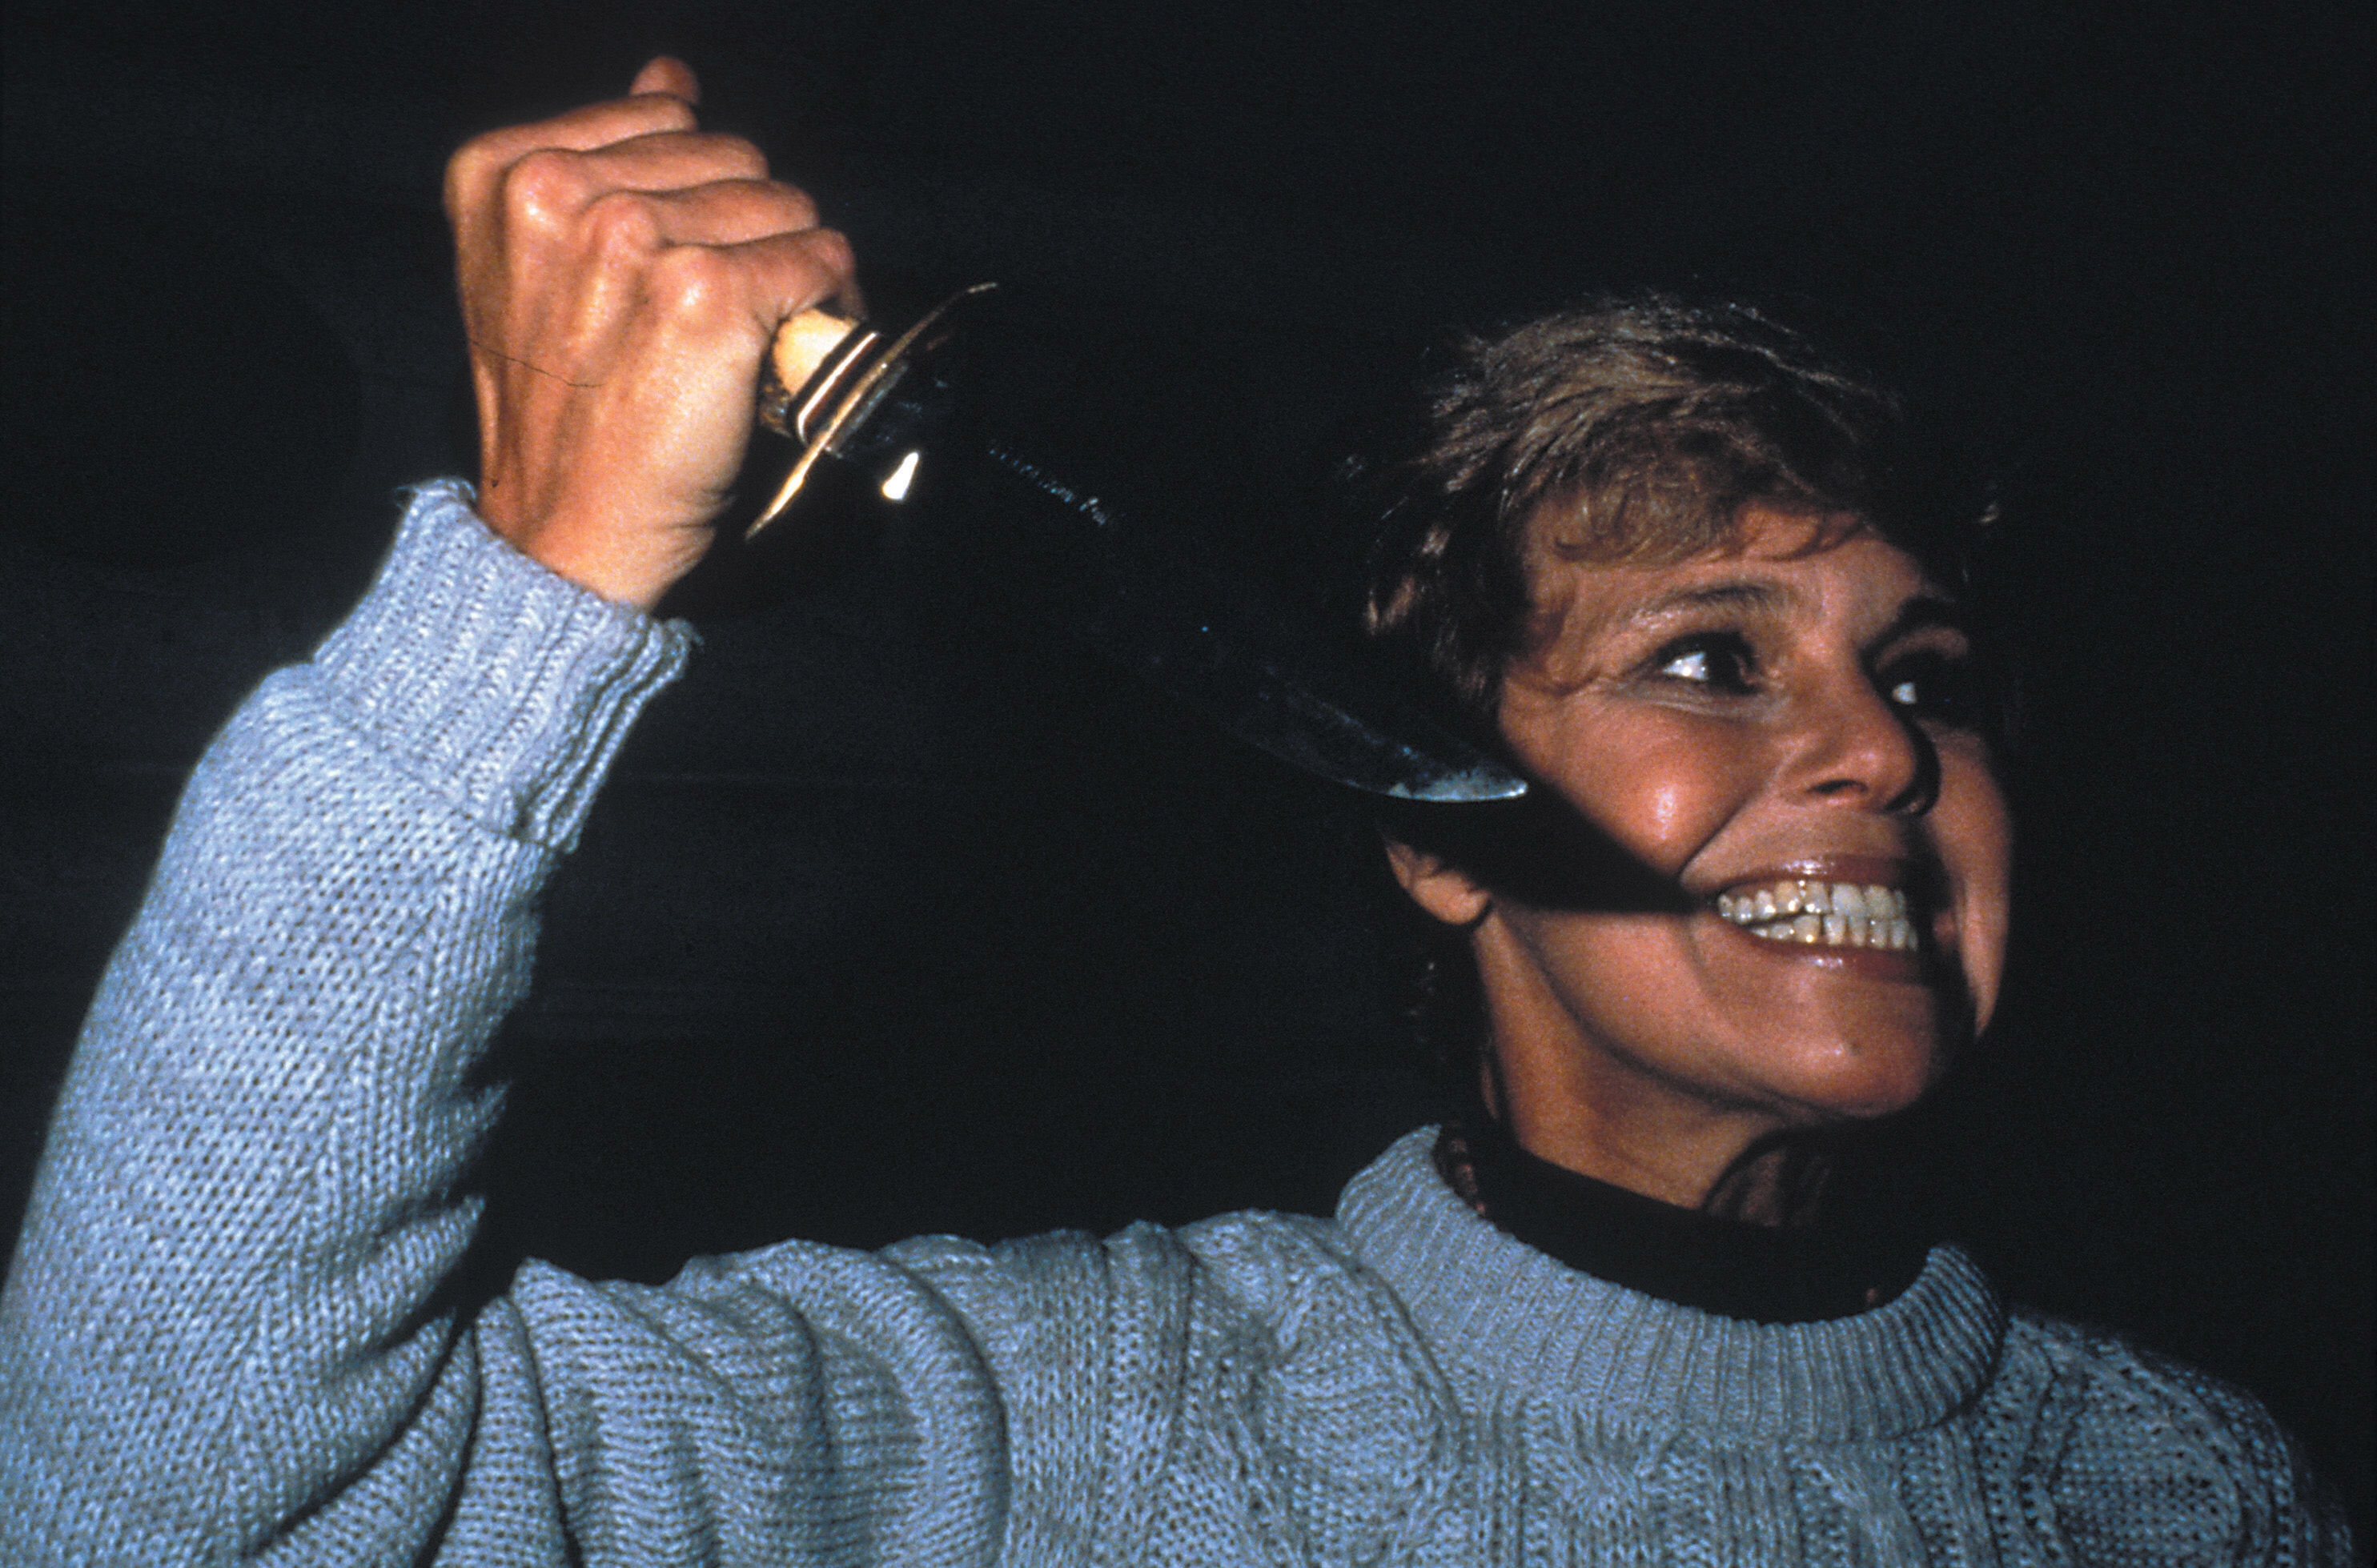 pamela voorhees friday the 13th wiki fandom powered by wikia